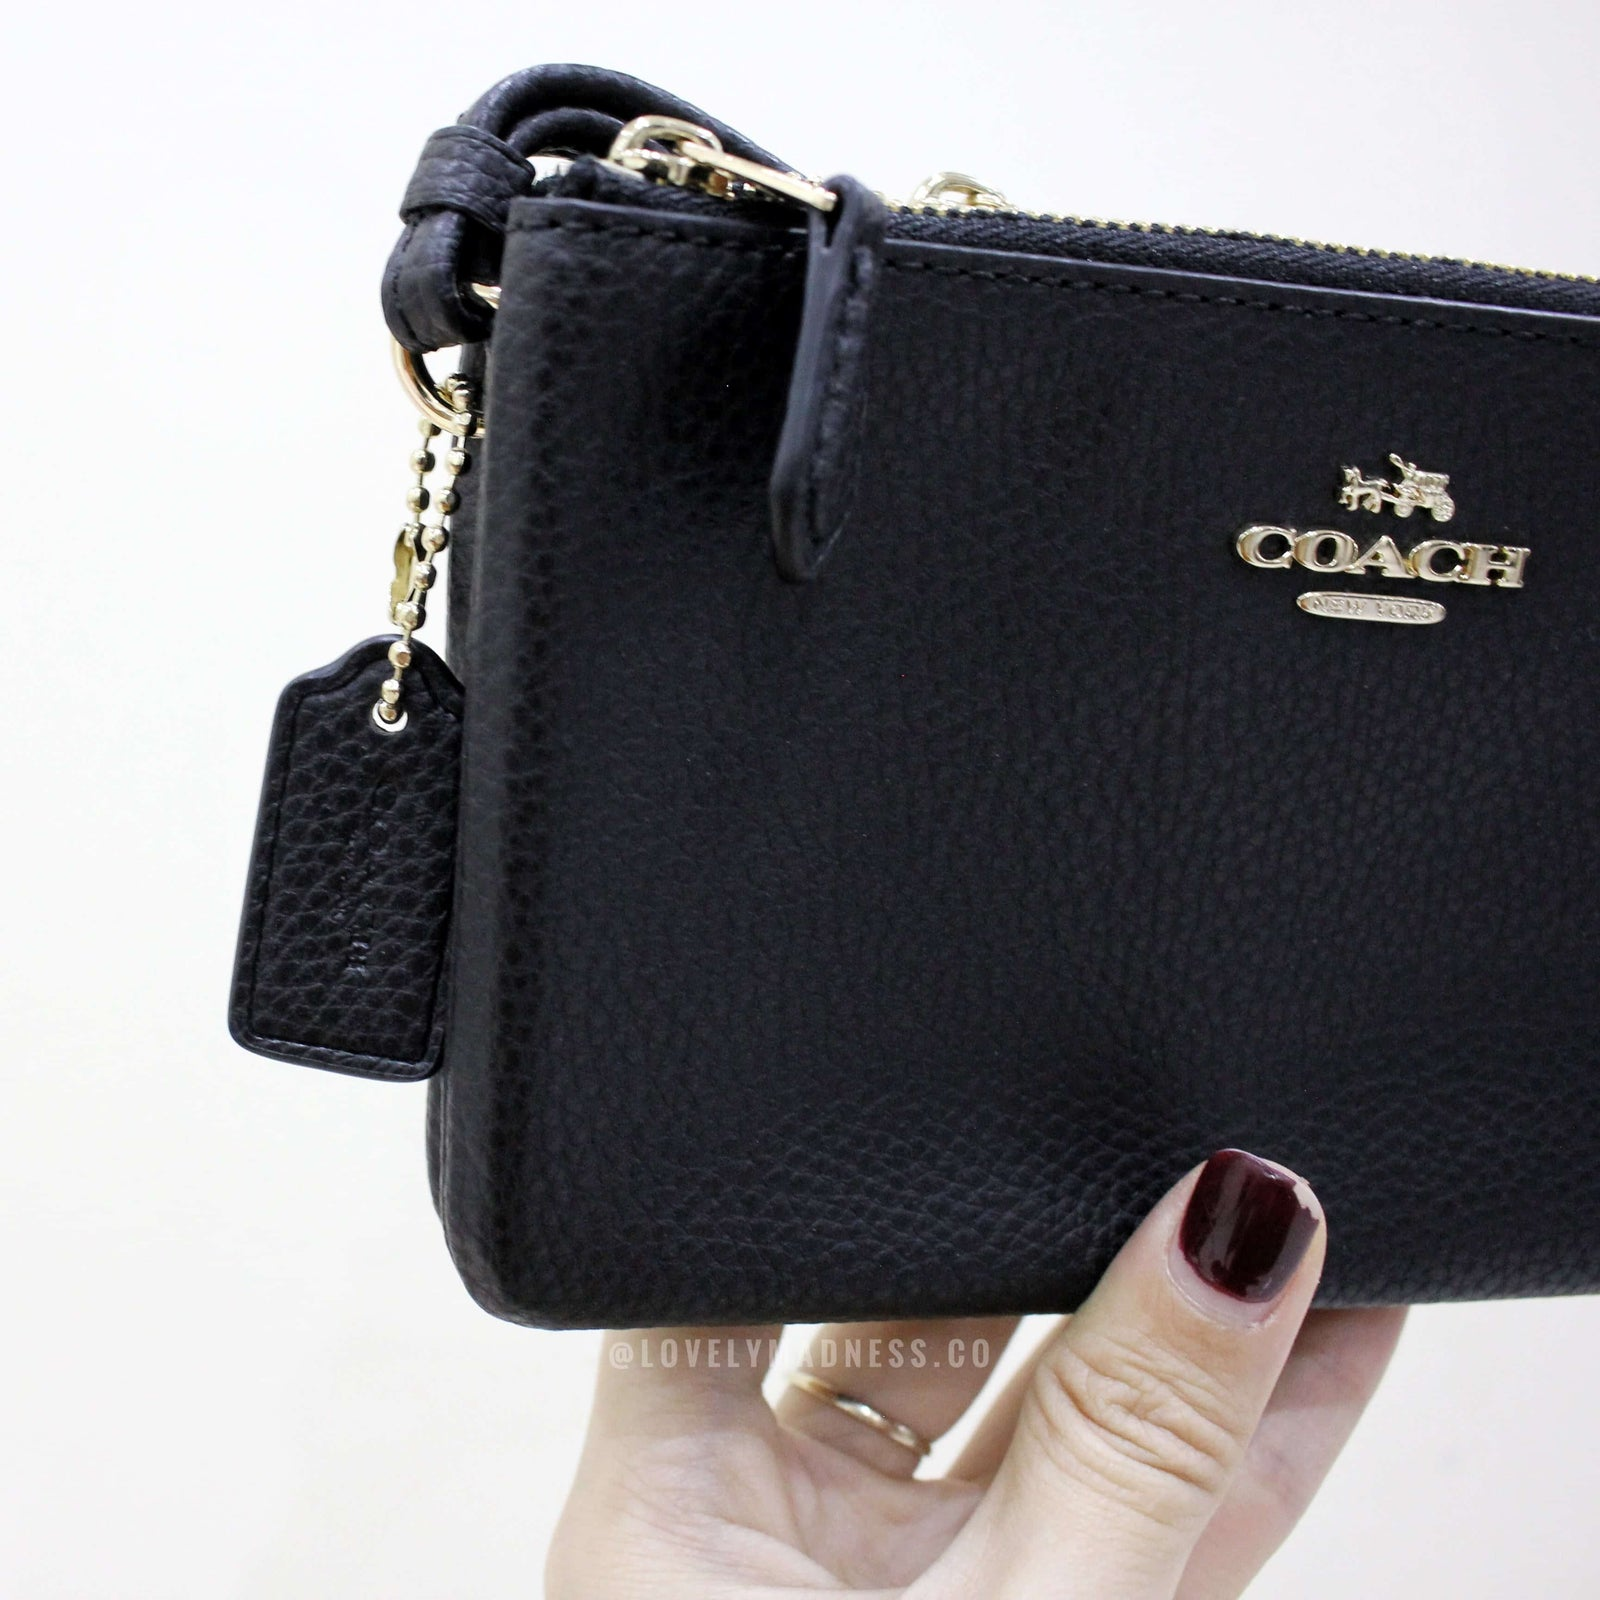 COACH DOUBLE CORNER ZIP WALLET POLISHED PEBBLE LEATHER - Lovely Madness